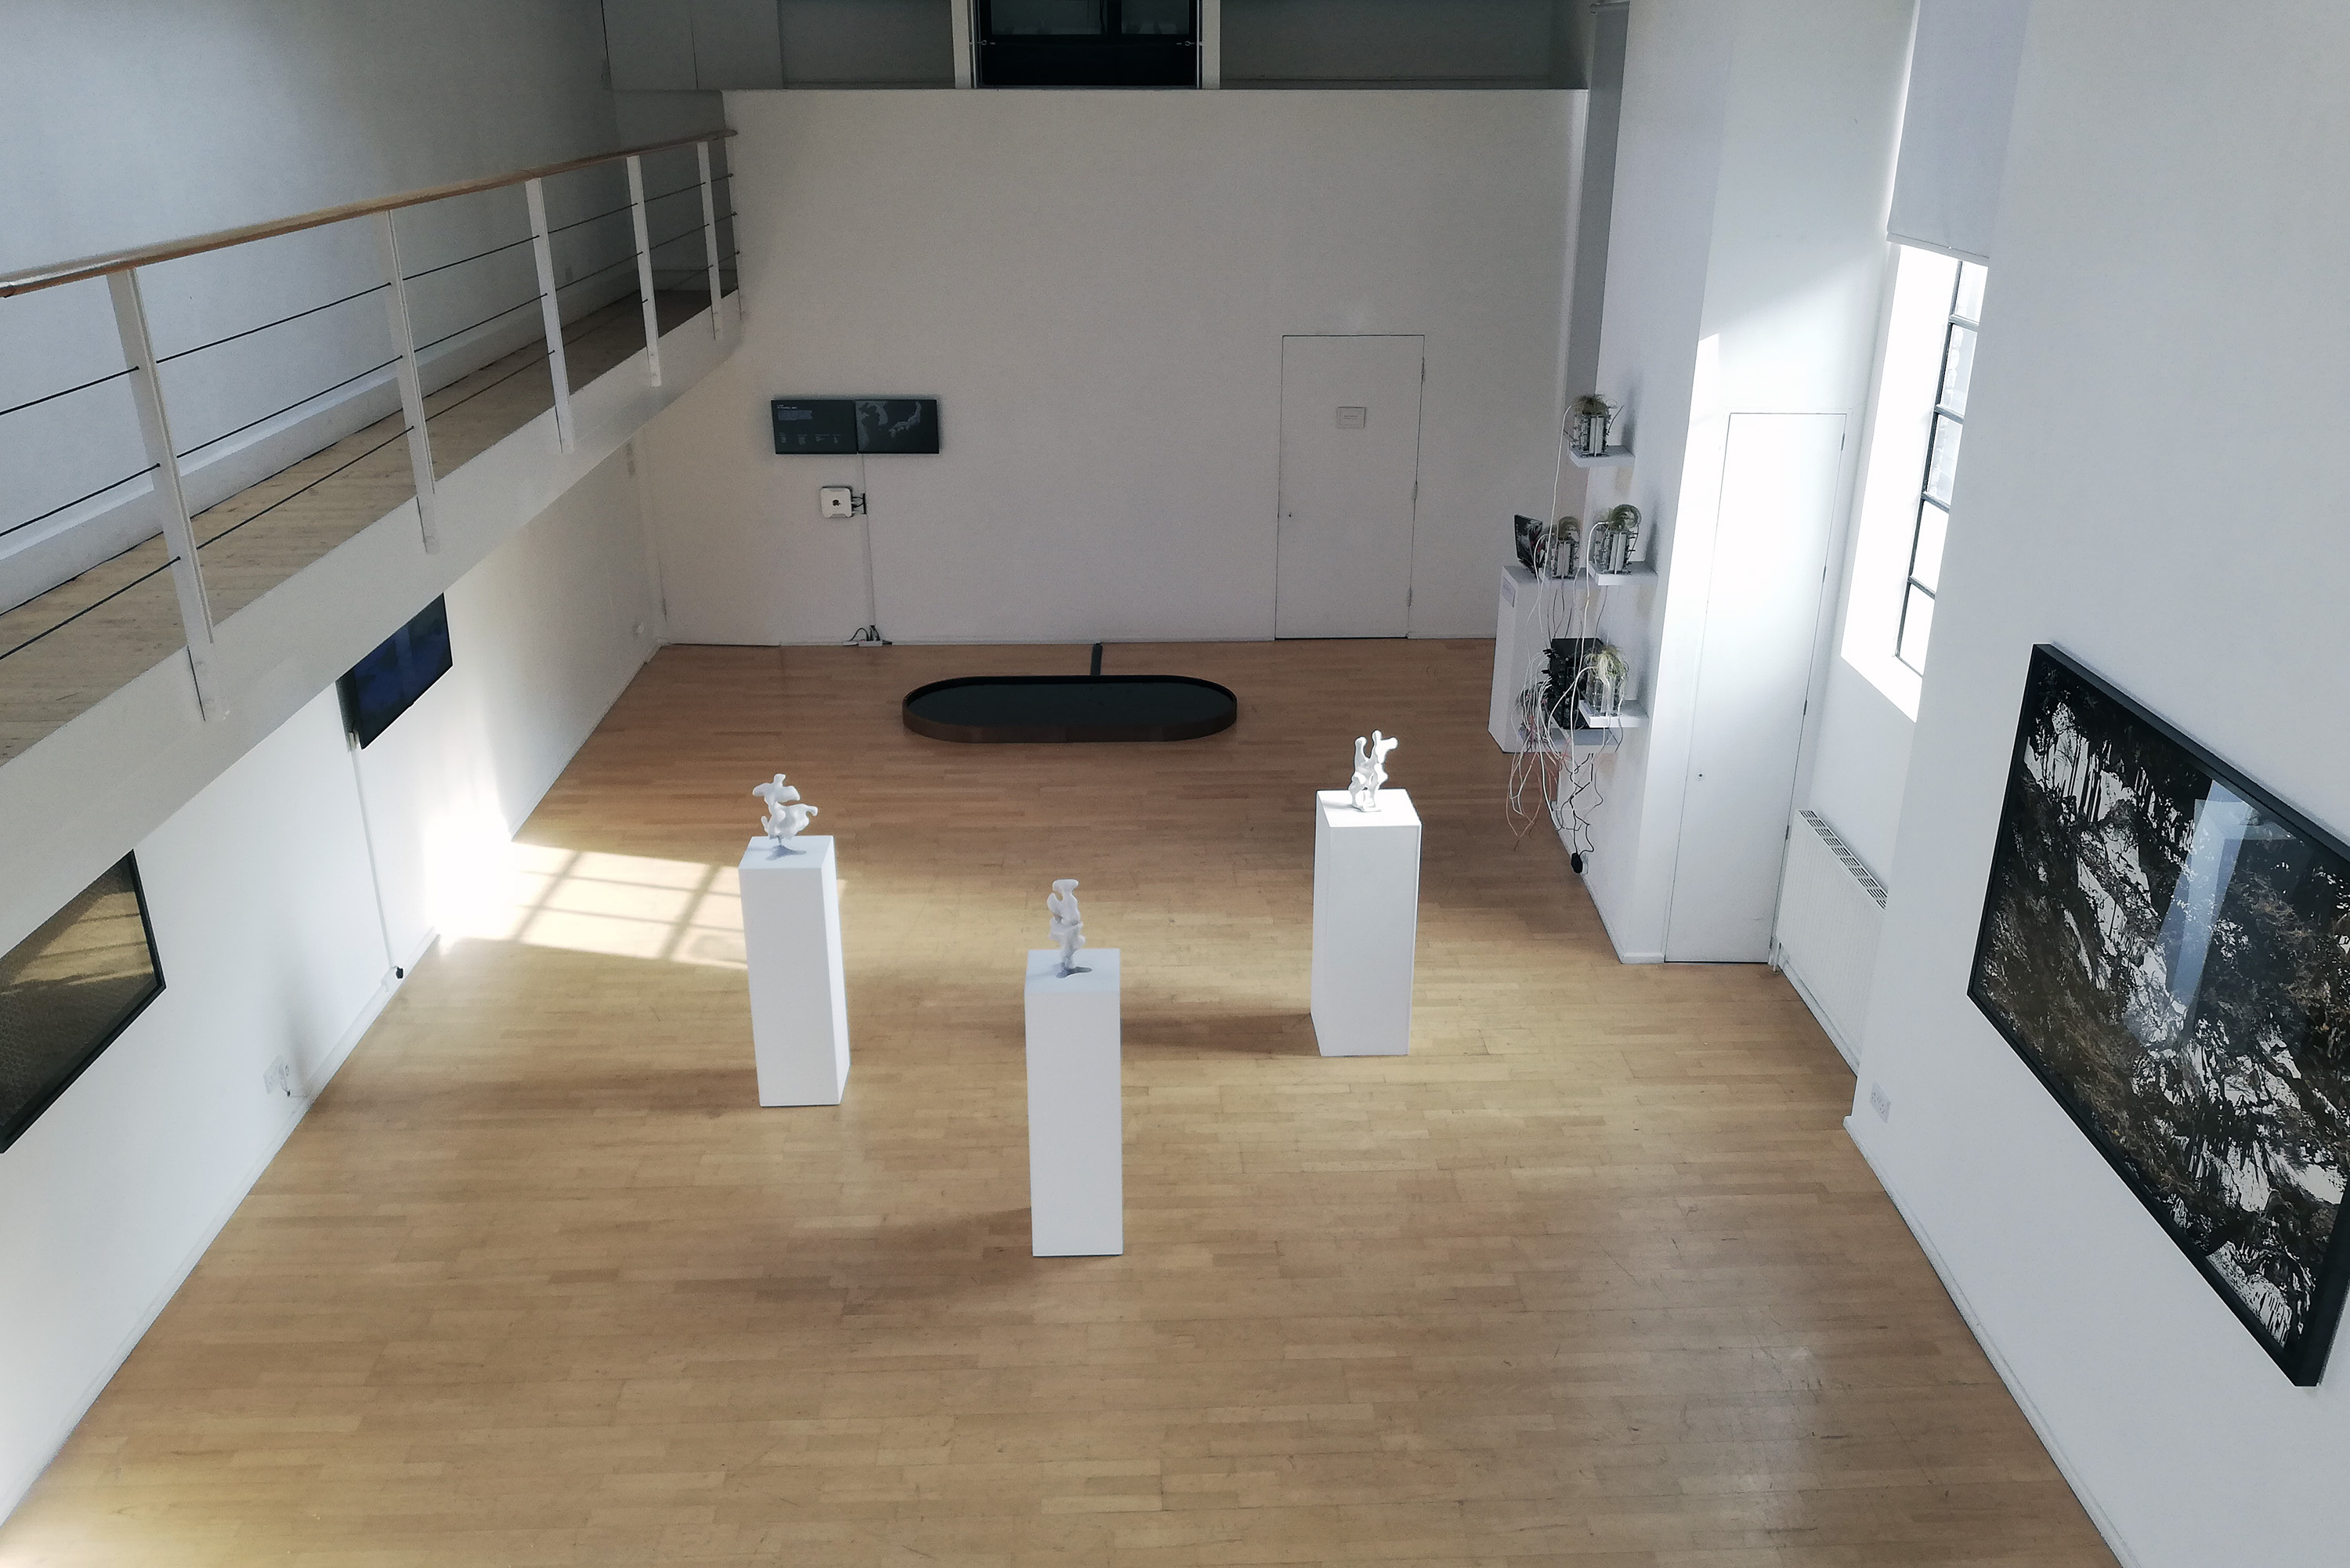 Exhibition overview, The Cello Factory Gallery London, Lumen Directors' showcase